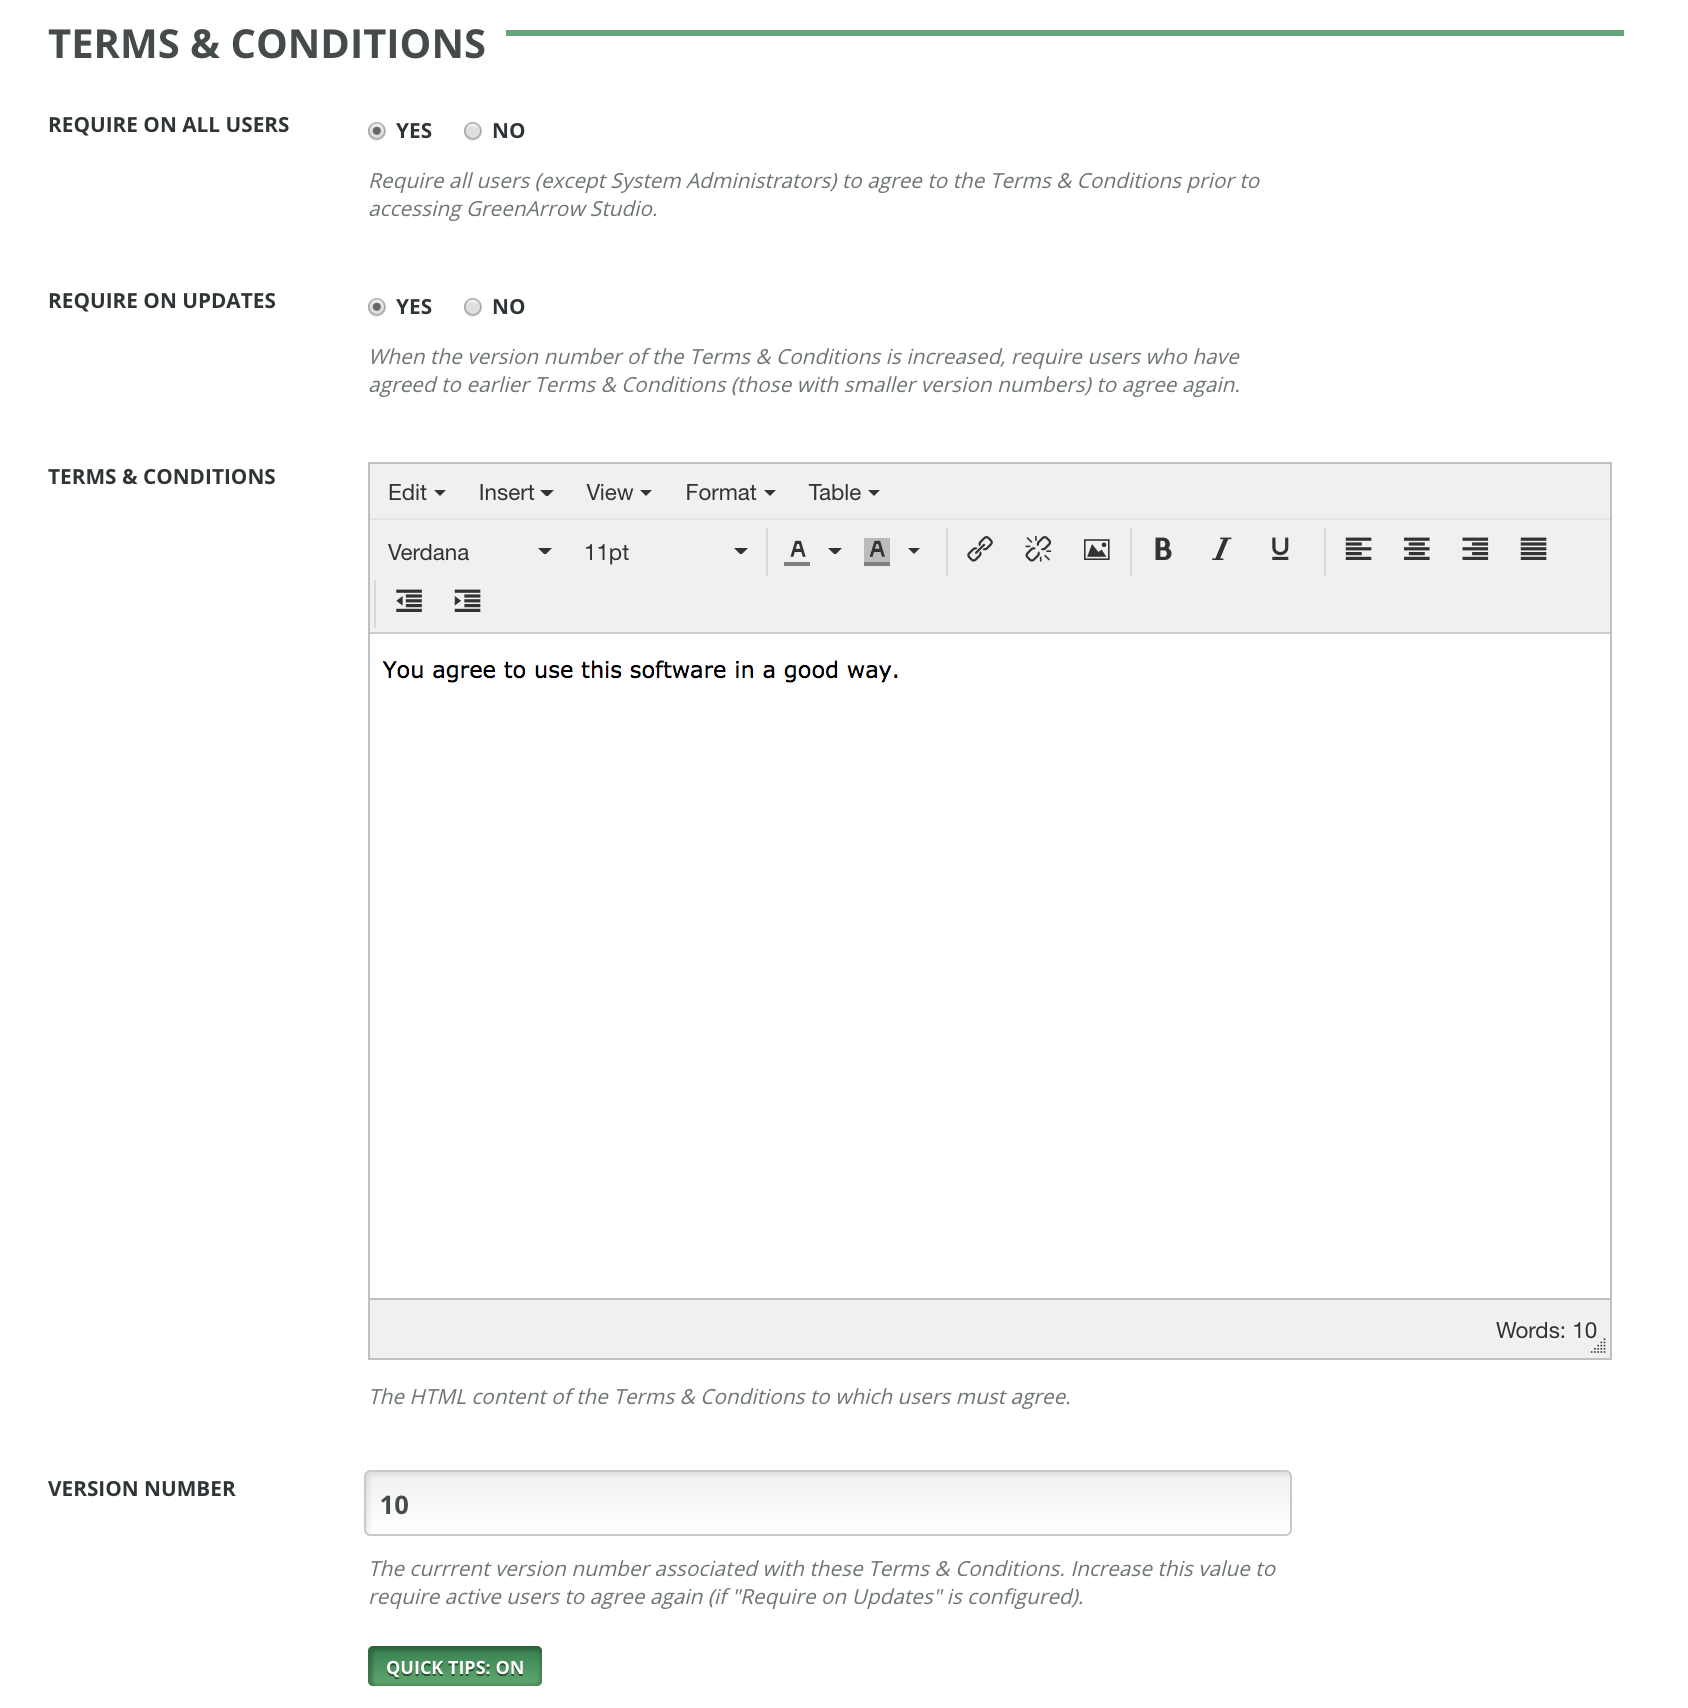 Terms & Conditions - Expanded